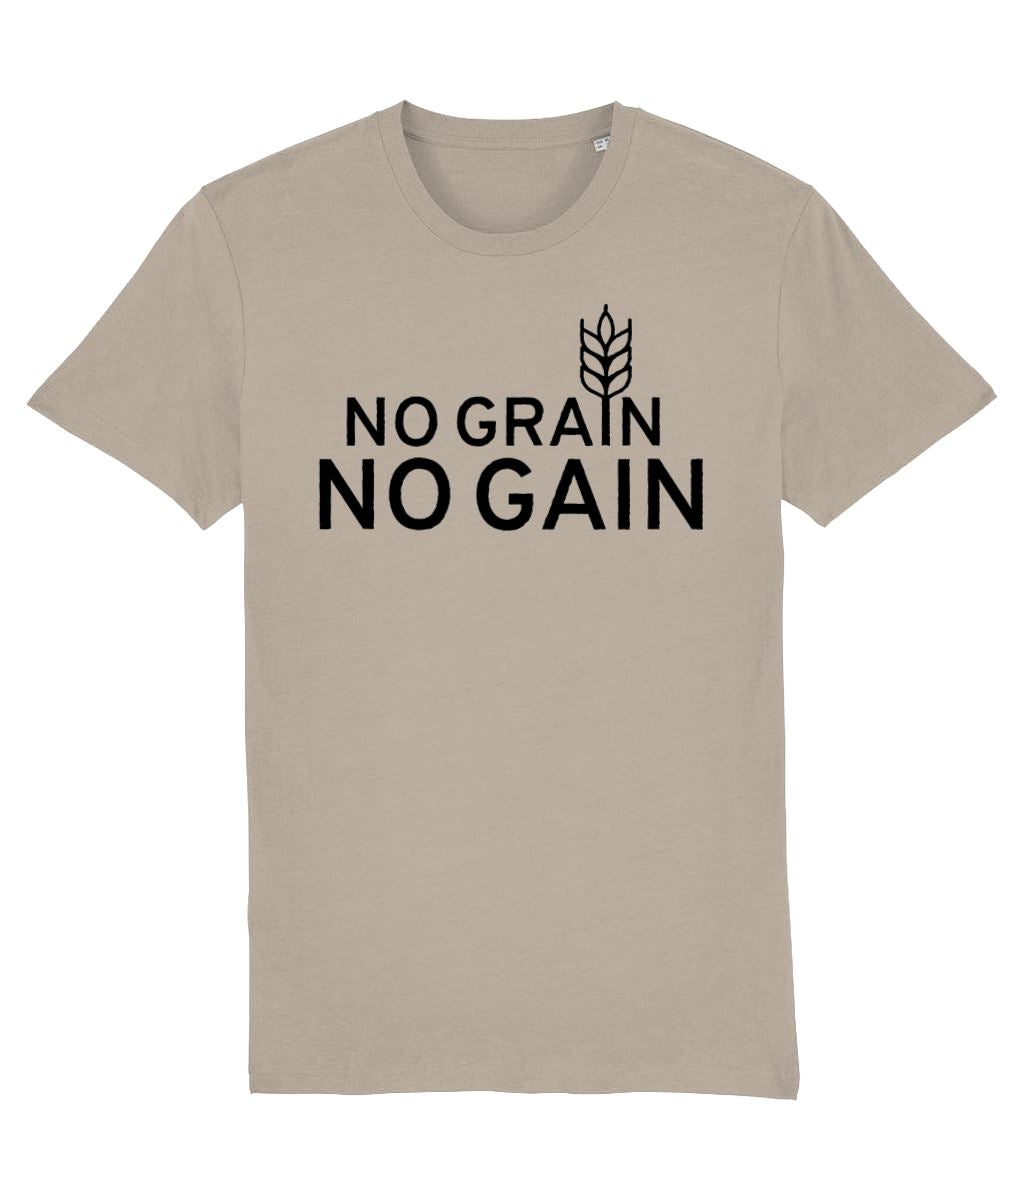 """No Grain, No Gain"" Vegan T-Shirt - 100% Organic Cotton (Unisex) Clothing Vegan Original Desert Dust X-Small"